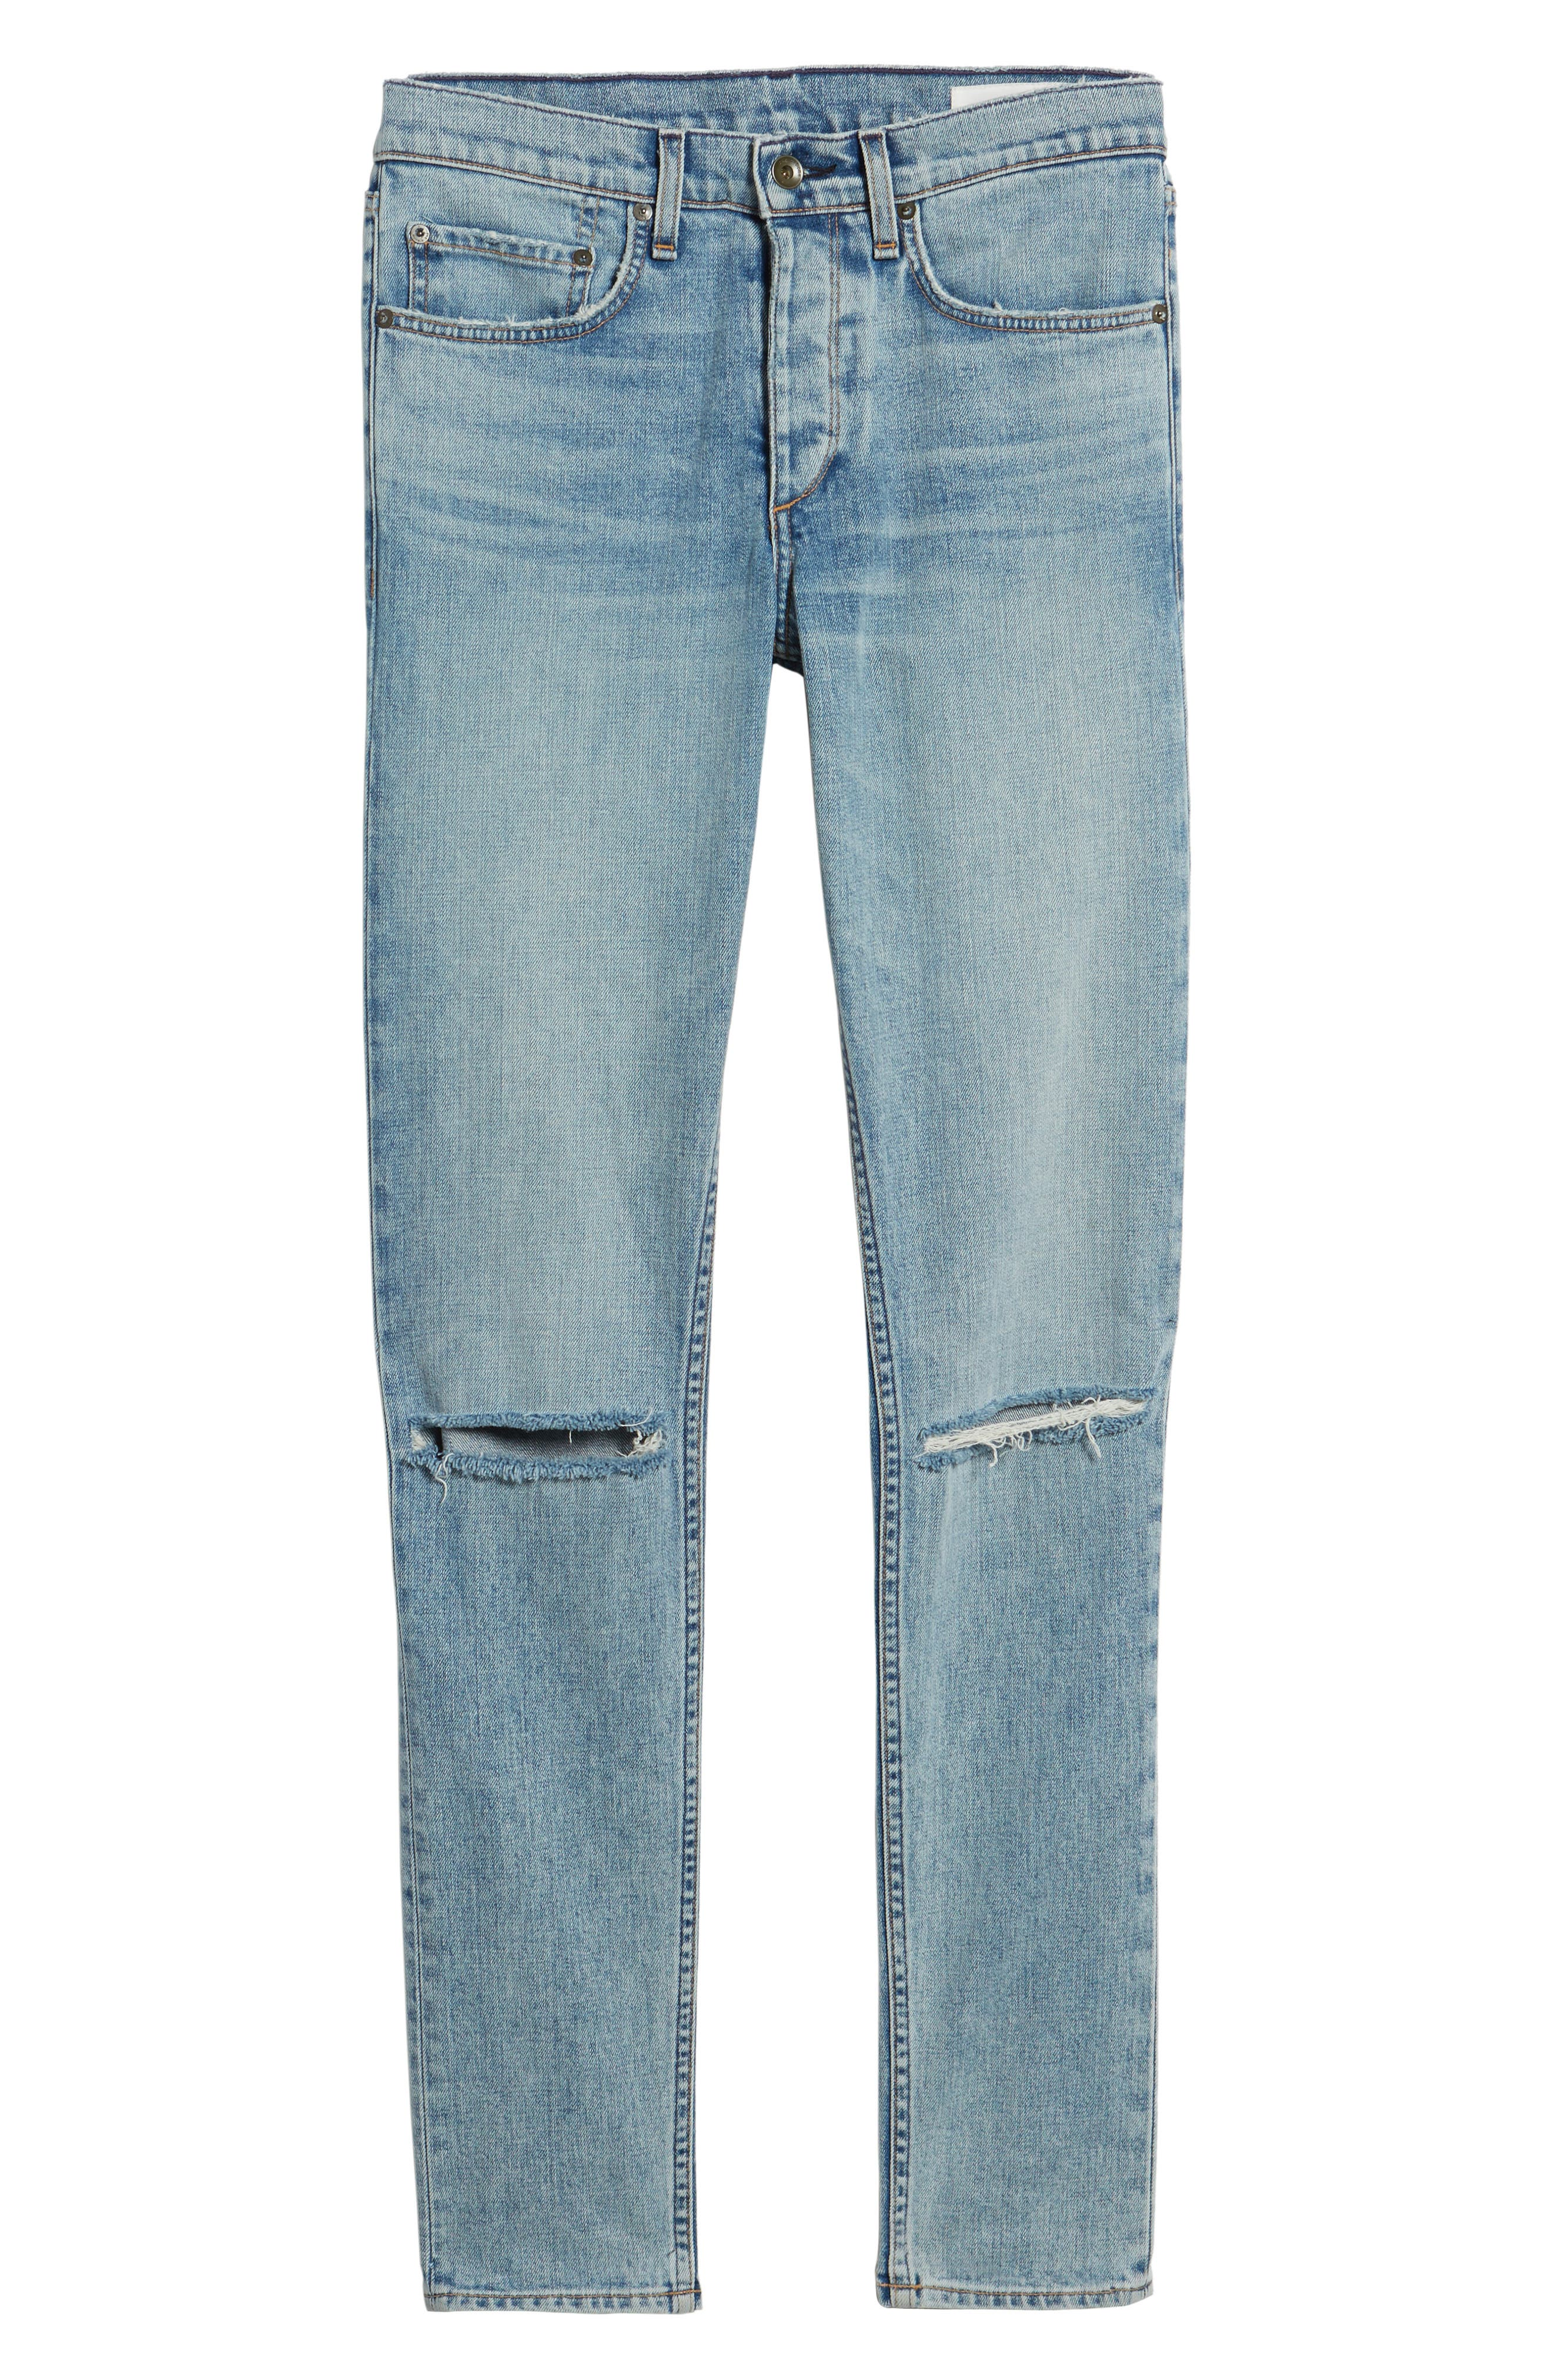 Fit 1 Skinny Fit Jeans,                             Alternate thumbnail 6, color,                             Jameson With Holes